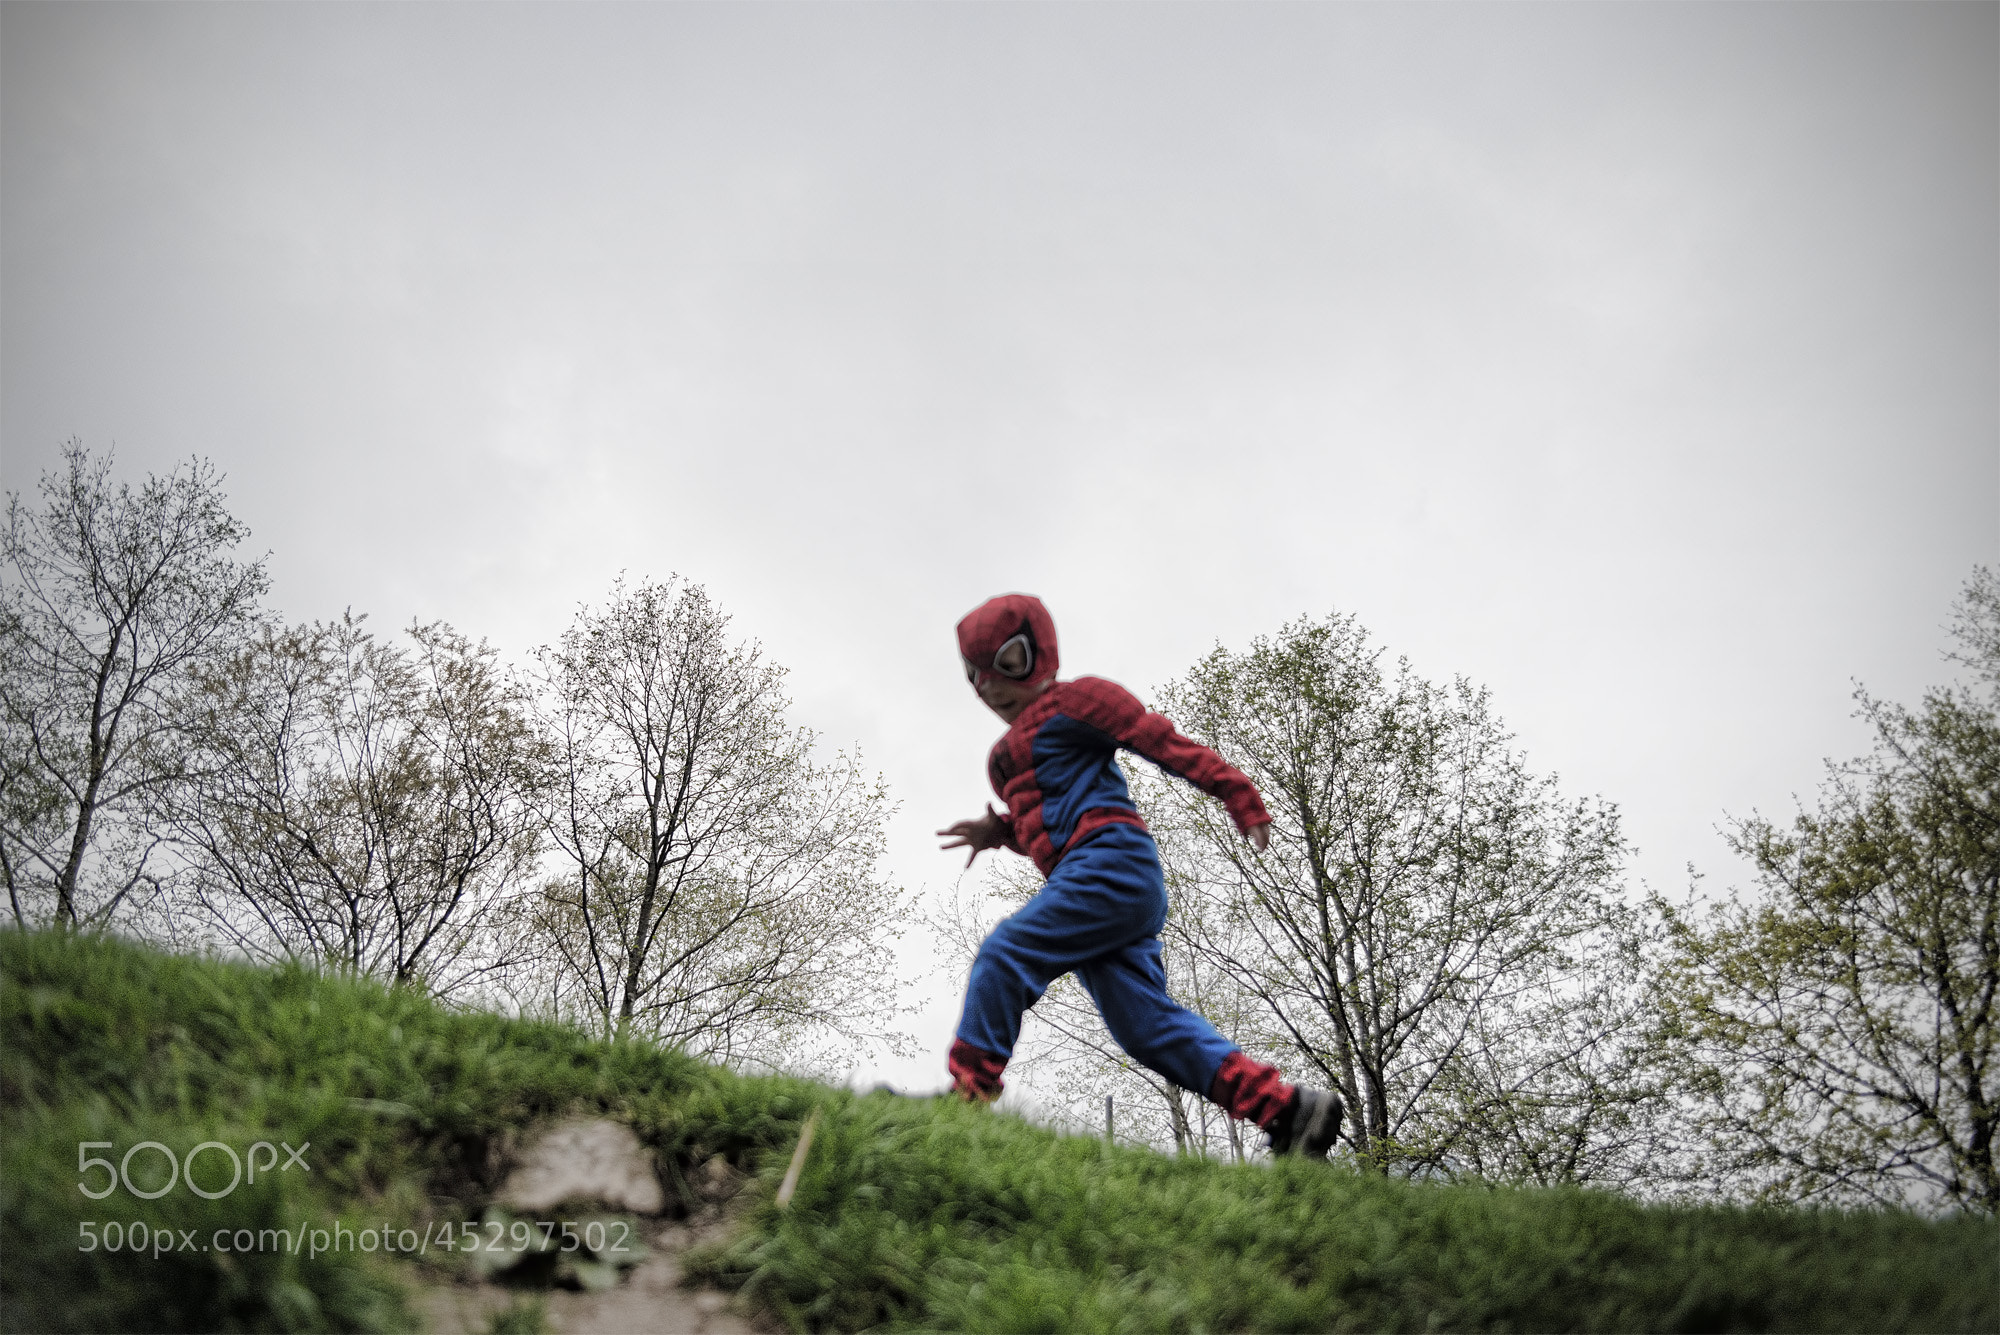 Photograph Spidey on the Go by Andrew Smith on 500px